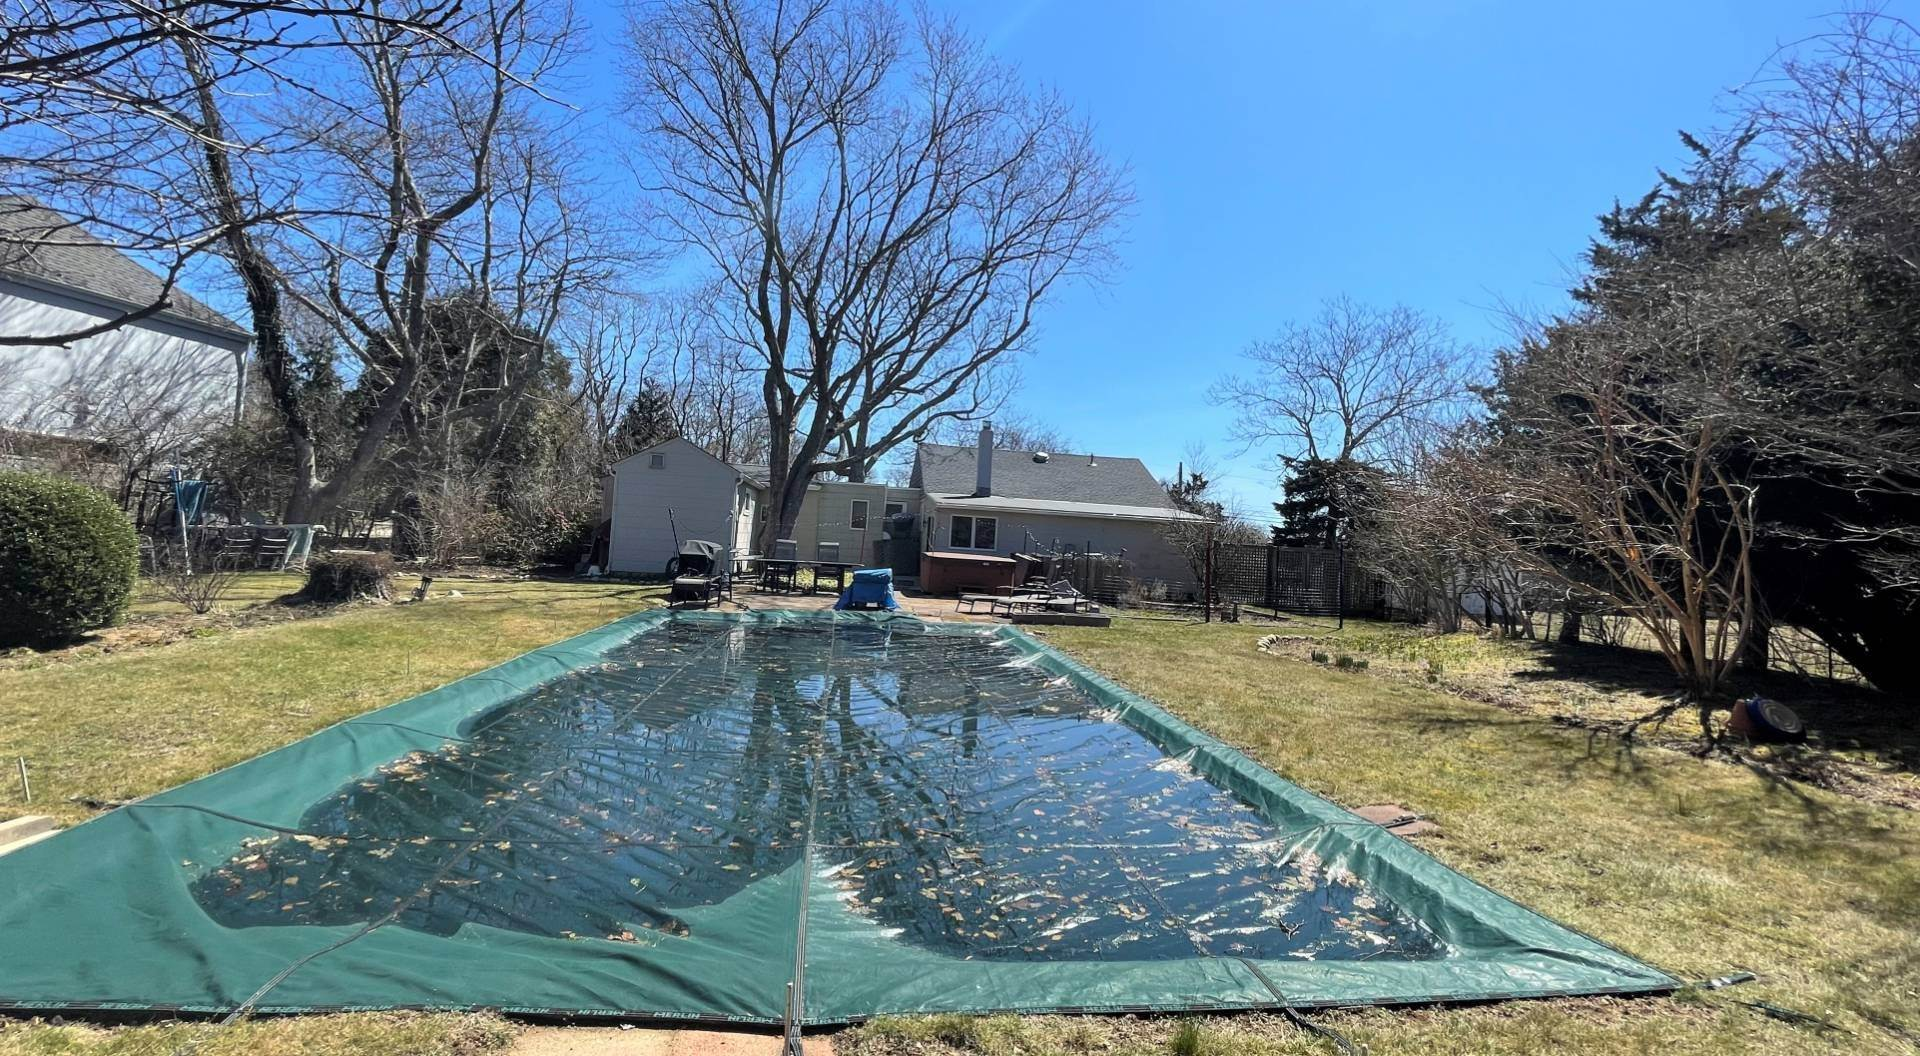 3. Single Family Home for Sale at Bluff Road, Amagansett 88 Bluff Road, Amagansett, NY 11930